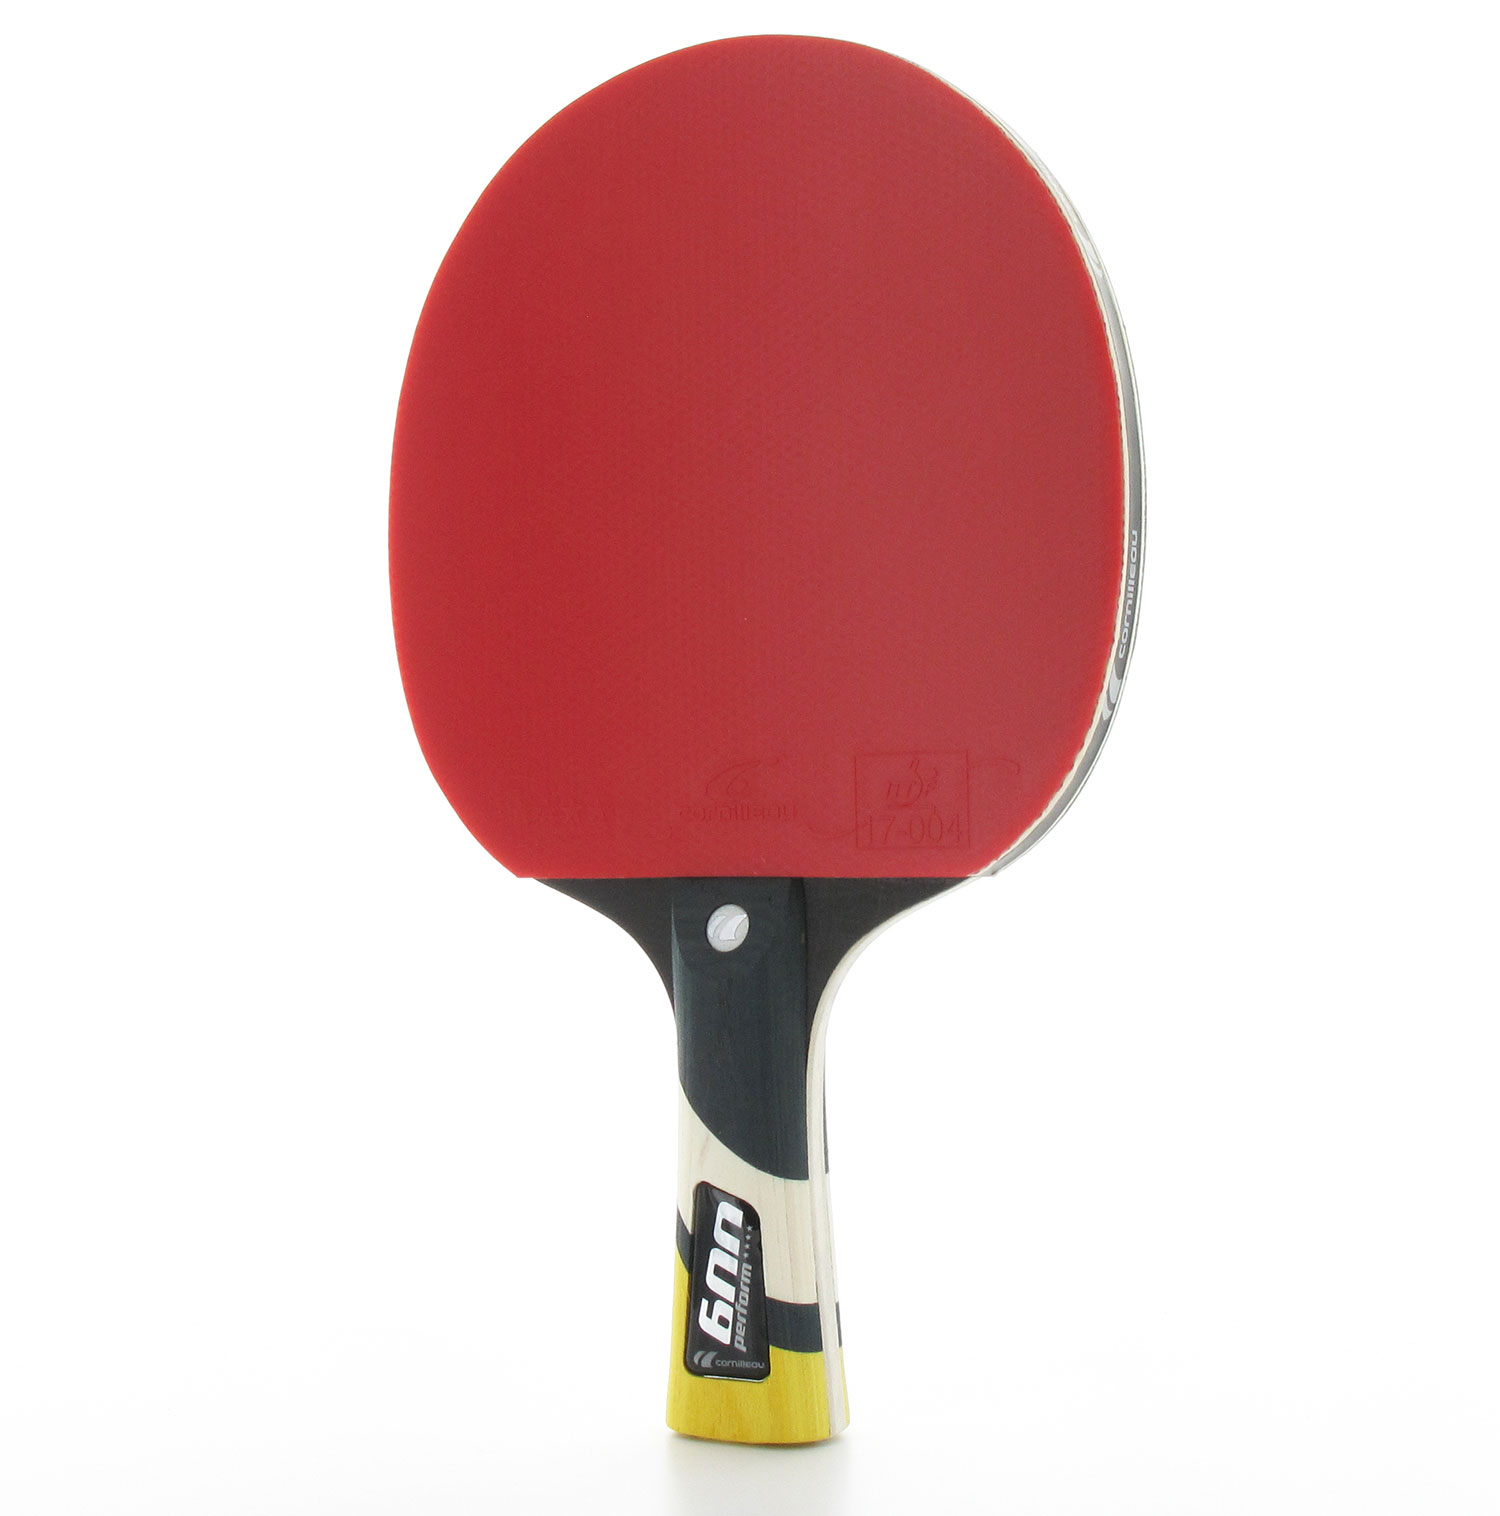 Cornilleau Perform 600 Bat Ittf